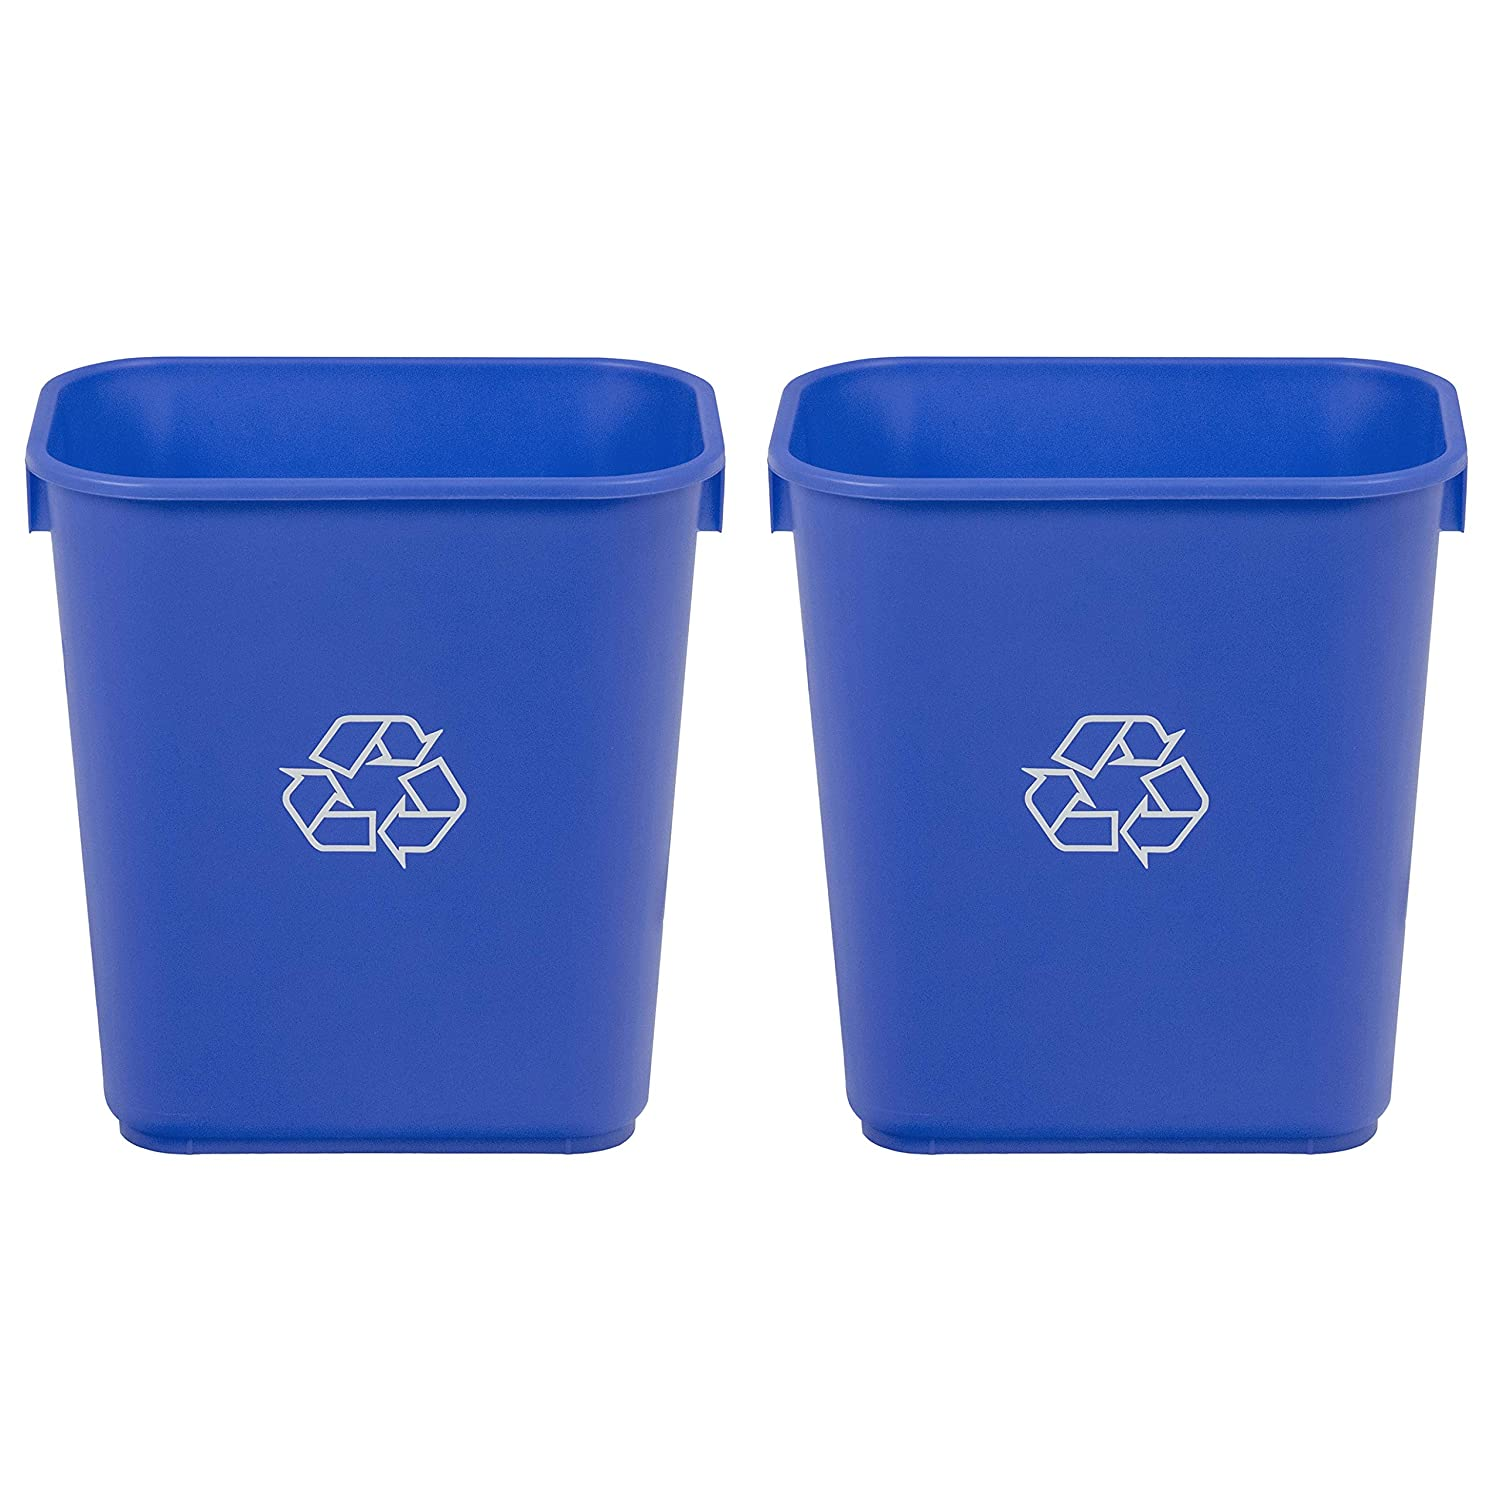 AmazonCommercial 3 Gallon Commercial Office Wastebasket, Blue w/Recycle Logo, 2-Pack